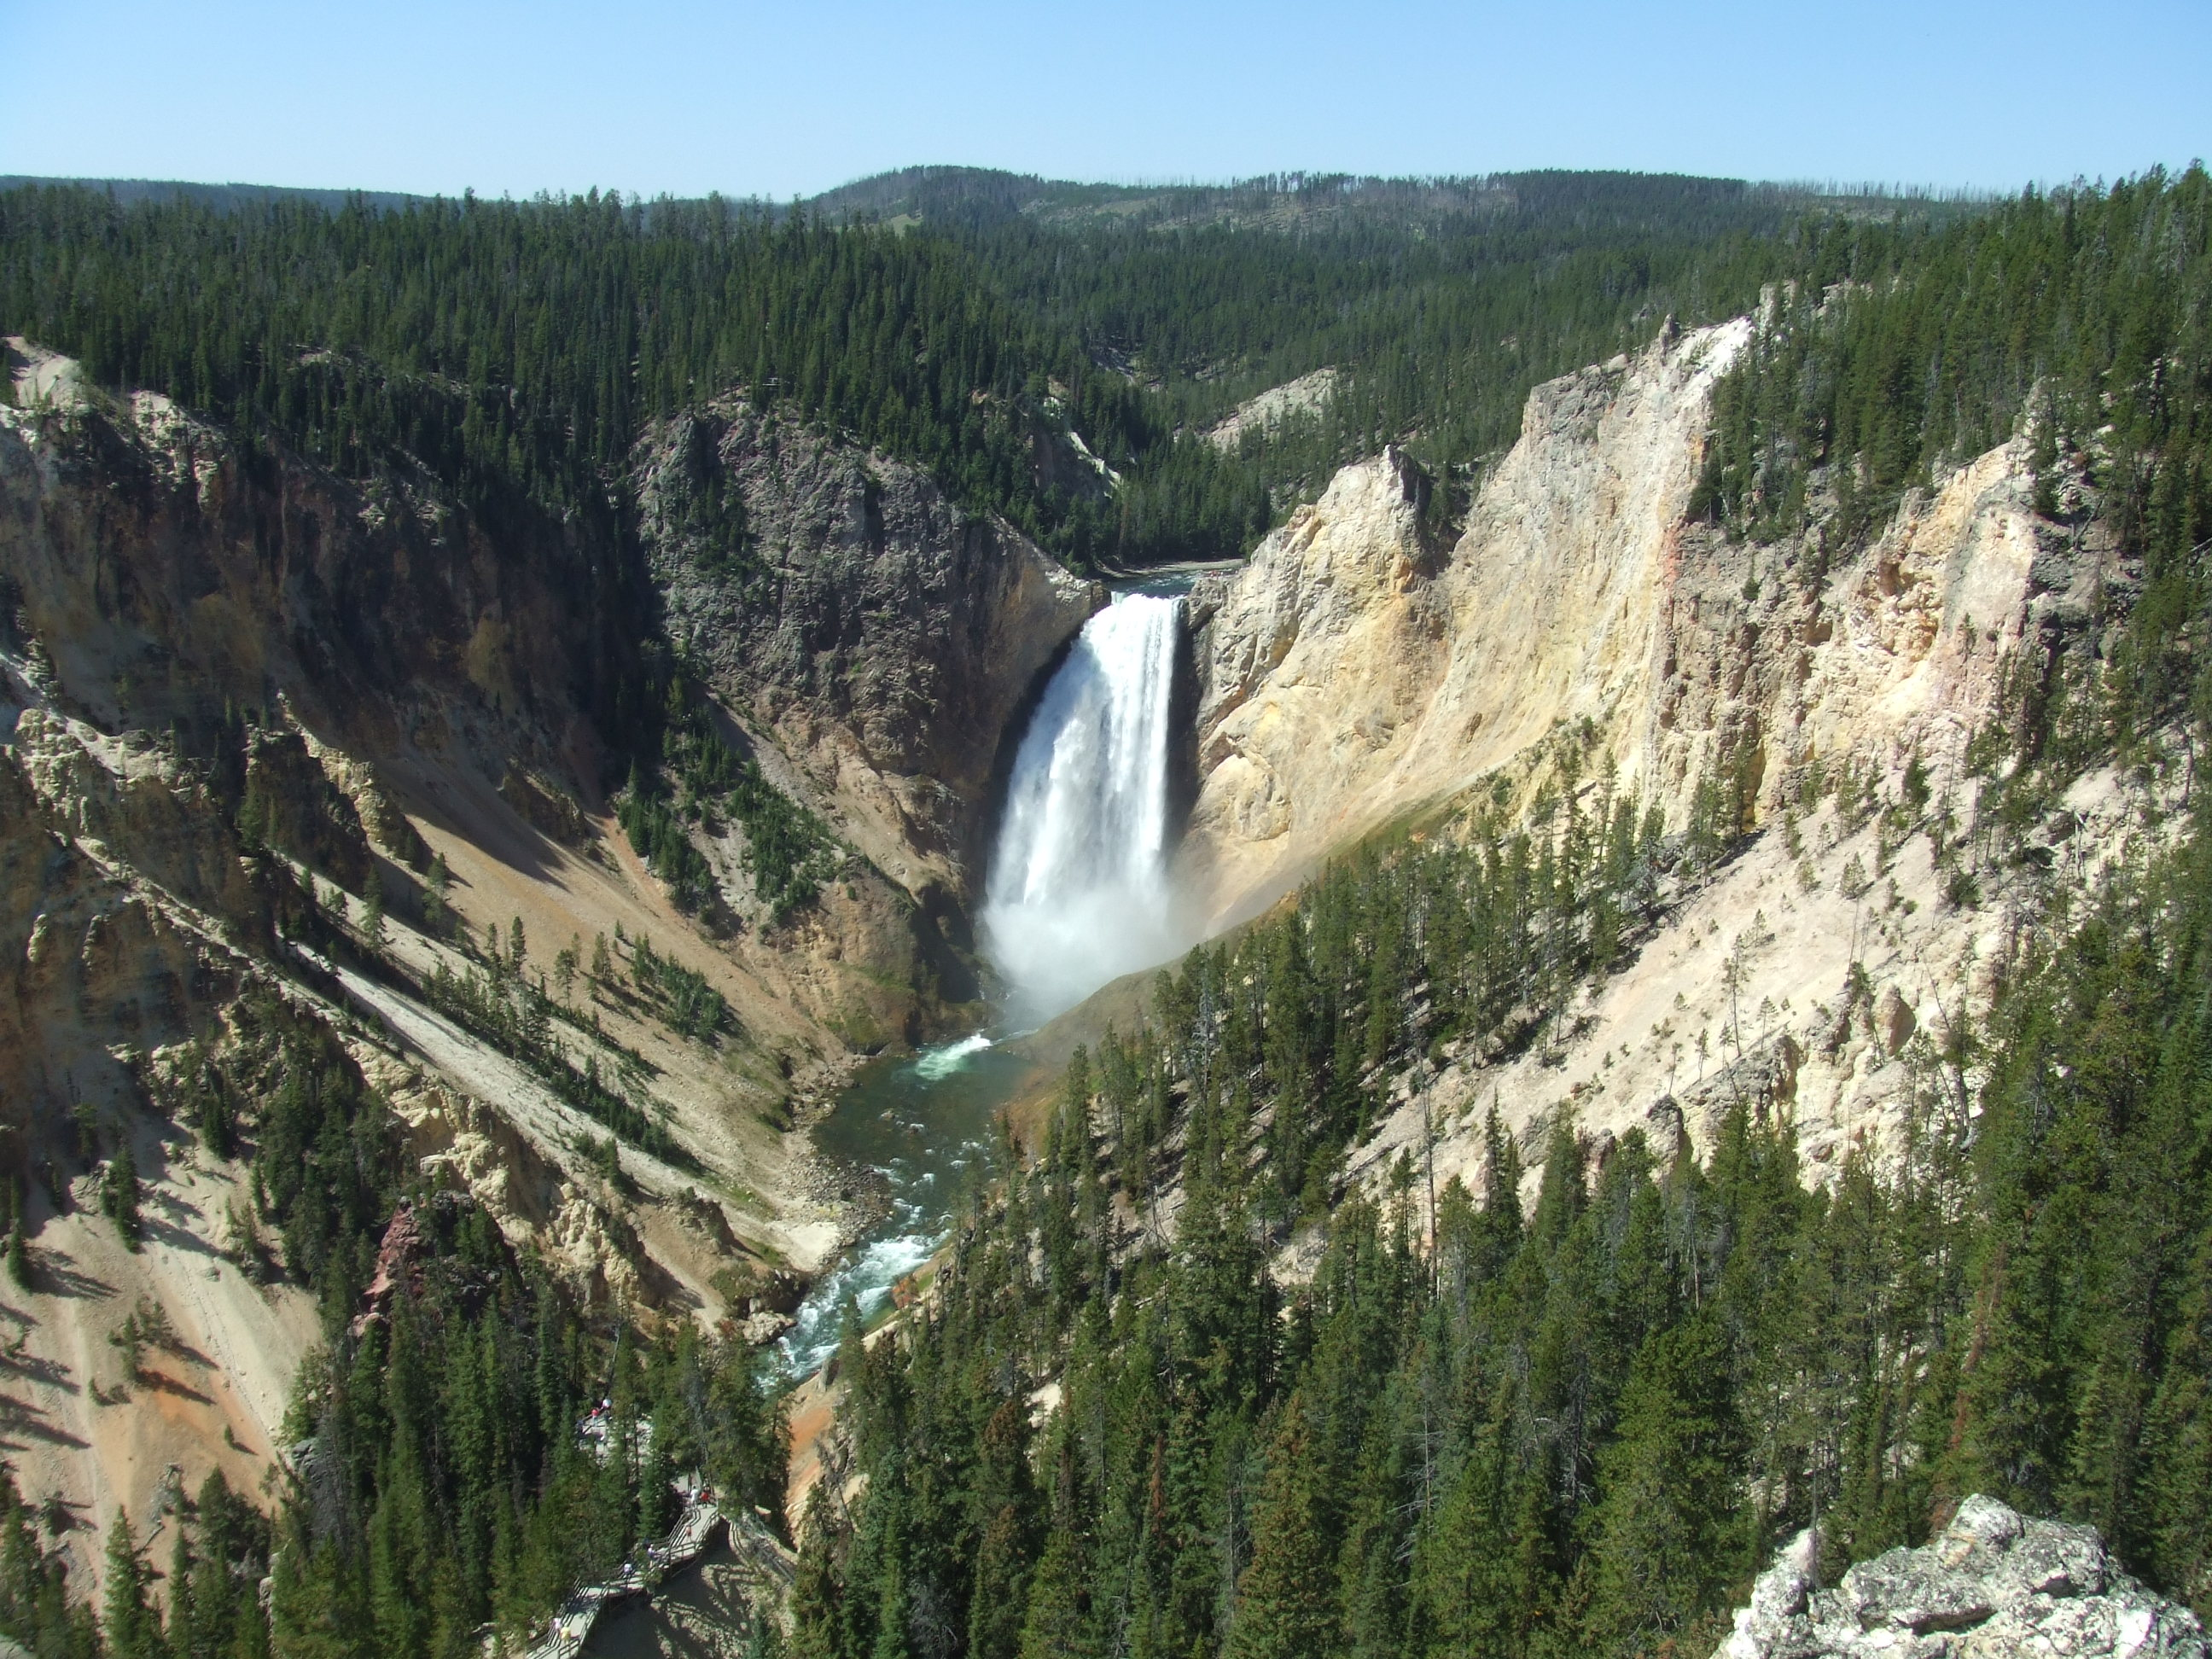 Park Air Profiles Yellowstone National Park U S National